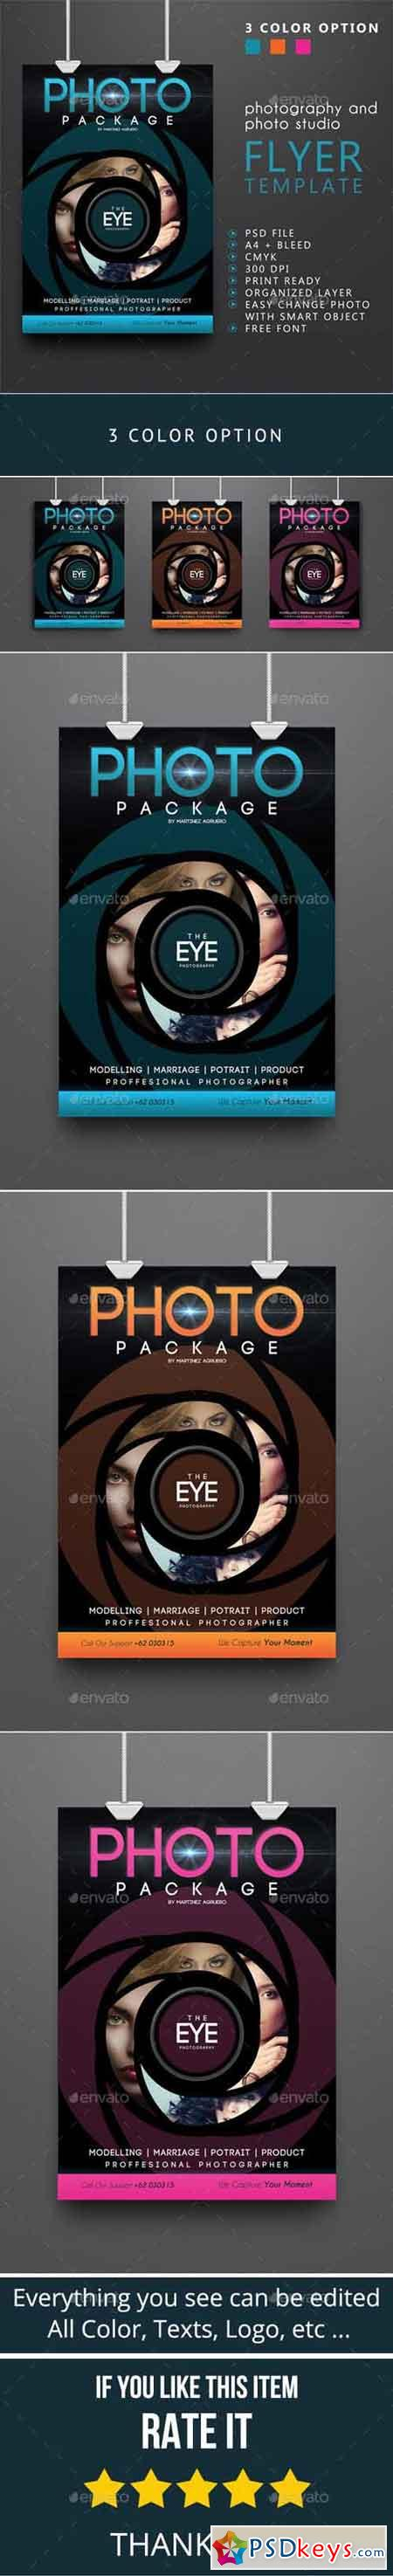 Photography Flyer Template 9345990 Free Download Photoshop Vector